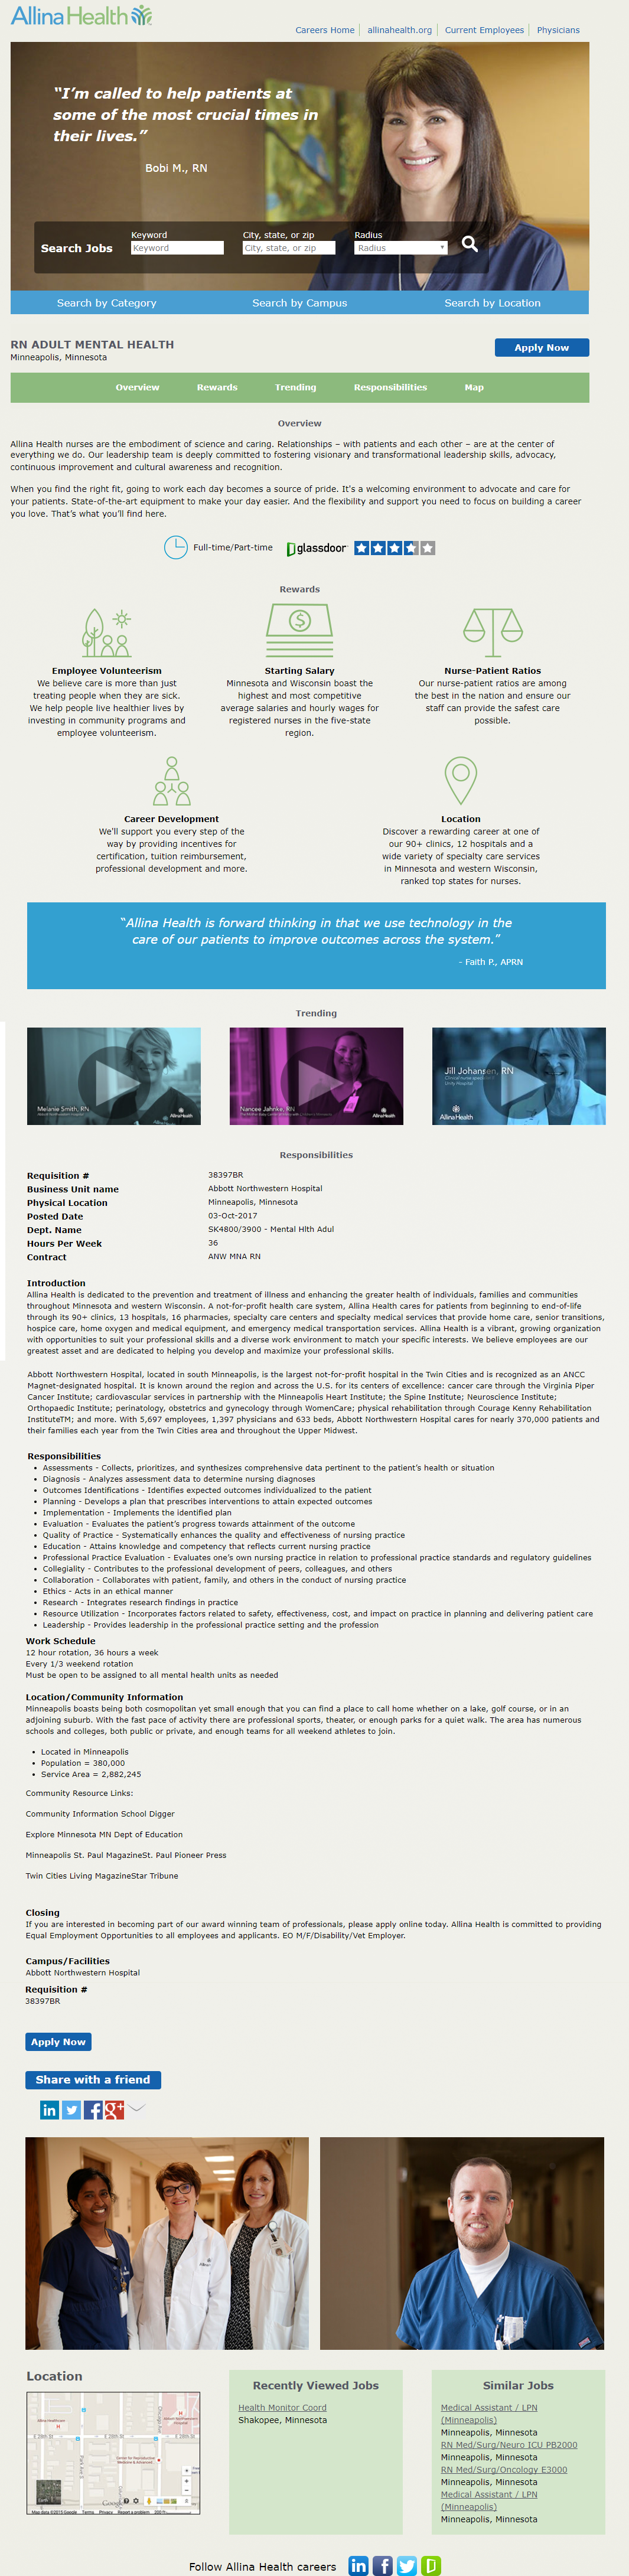 Allina Health Kenexa Brassring ATS Job Page